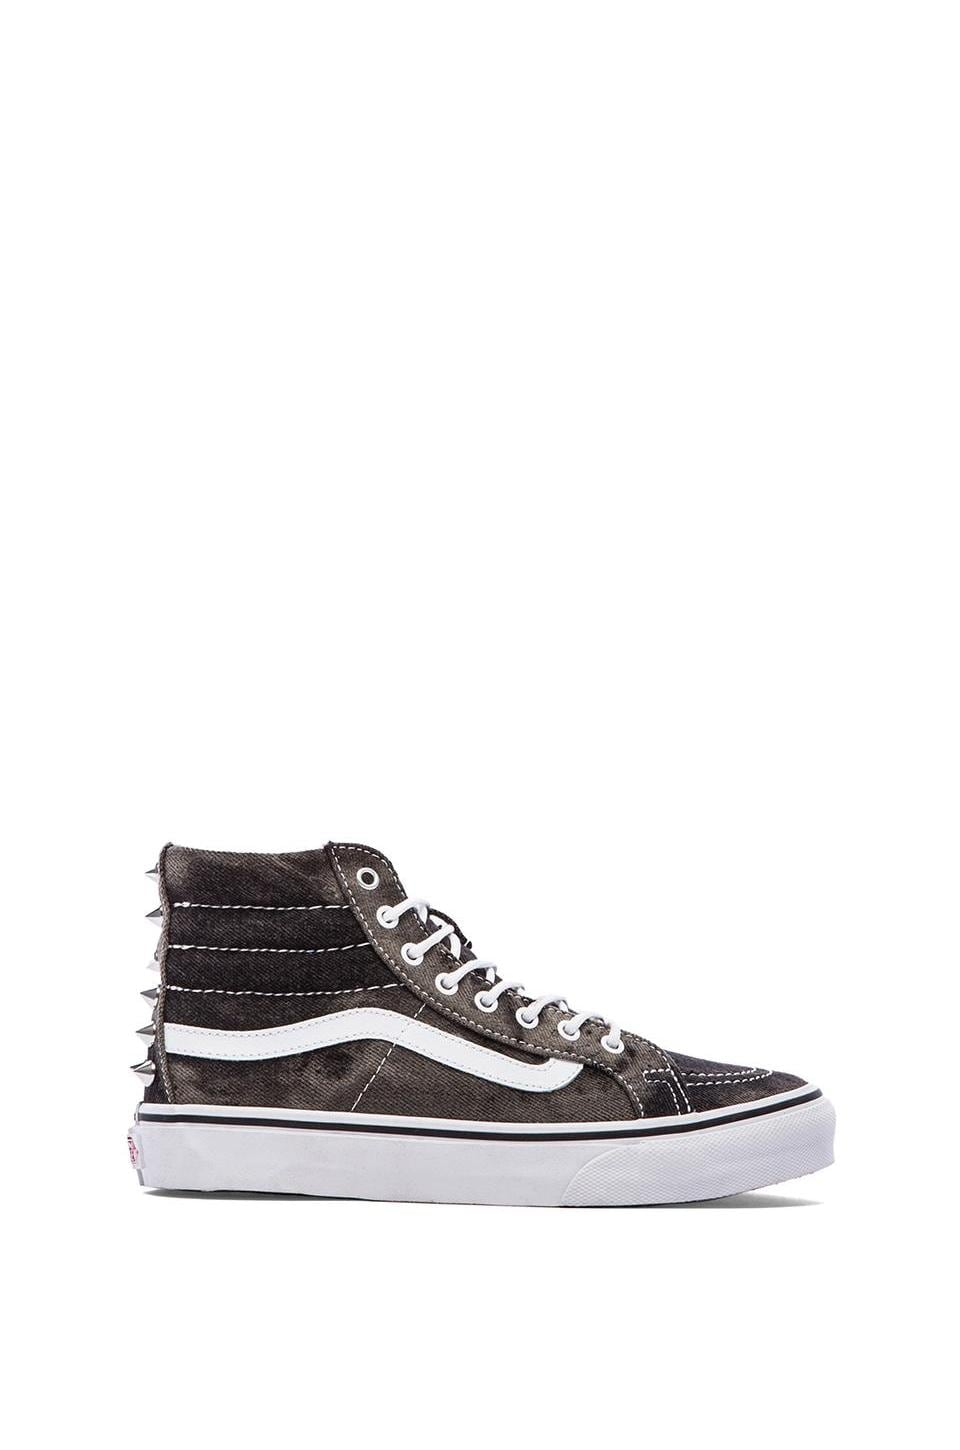 Vans SK8-Hi Slim Sneaker in Acid Wash